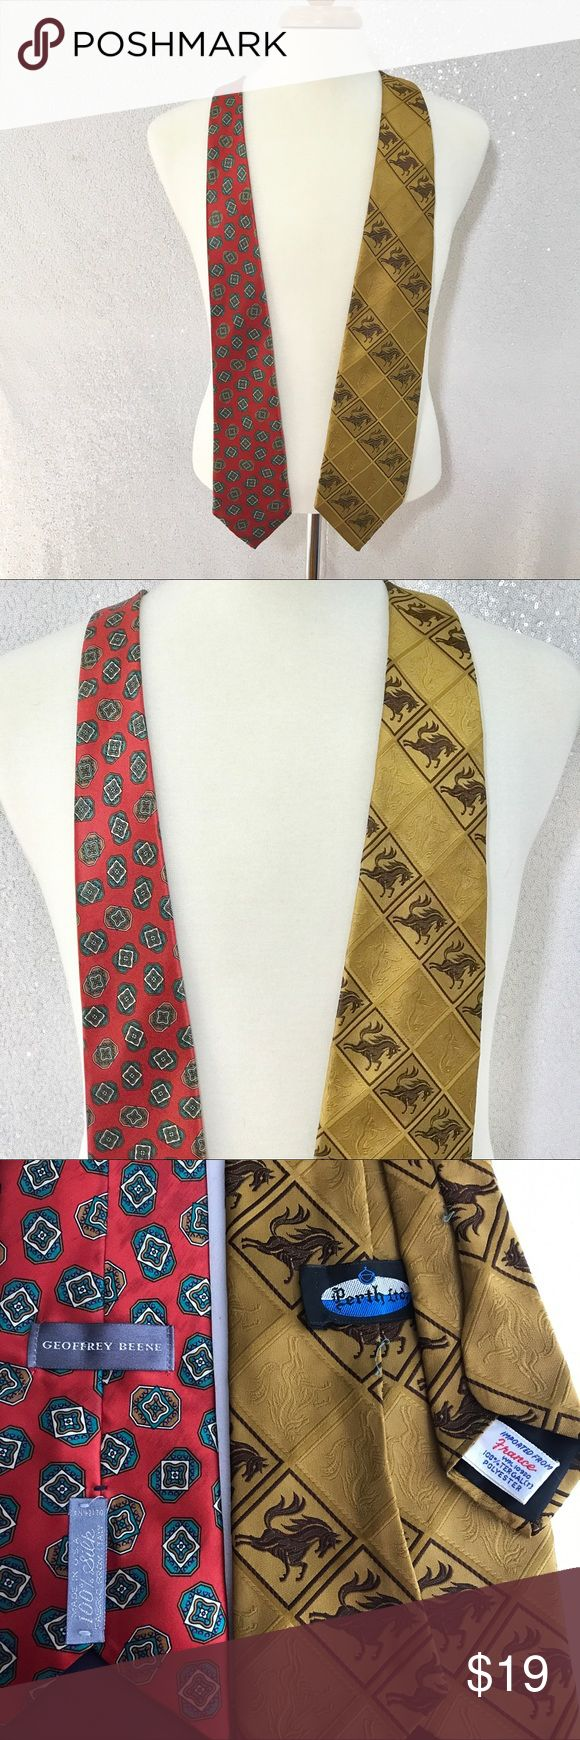 Geoffrey Beene silk necktie bundle Two neckties. Geoffrey Beene and Perth Ltd. Colors may vary slightly to lighting and photos. No holes, rips or stains. Measurements approximately as shown. ❌Smoke and pet free home. ⚡️Same/next day shipping. 💲Save by bundling or make a reasonable offer through the offer button. 🚫No holds, trades or modeling. 📦Wrapped and shipped with care. 🎁Includes free gift. Geoffrey Beene Accessories Ties